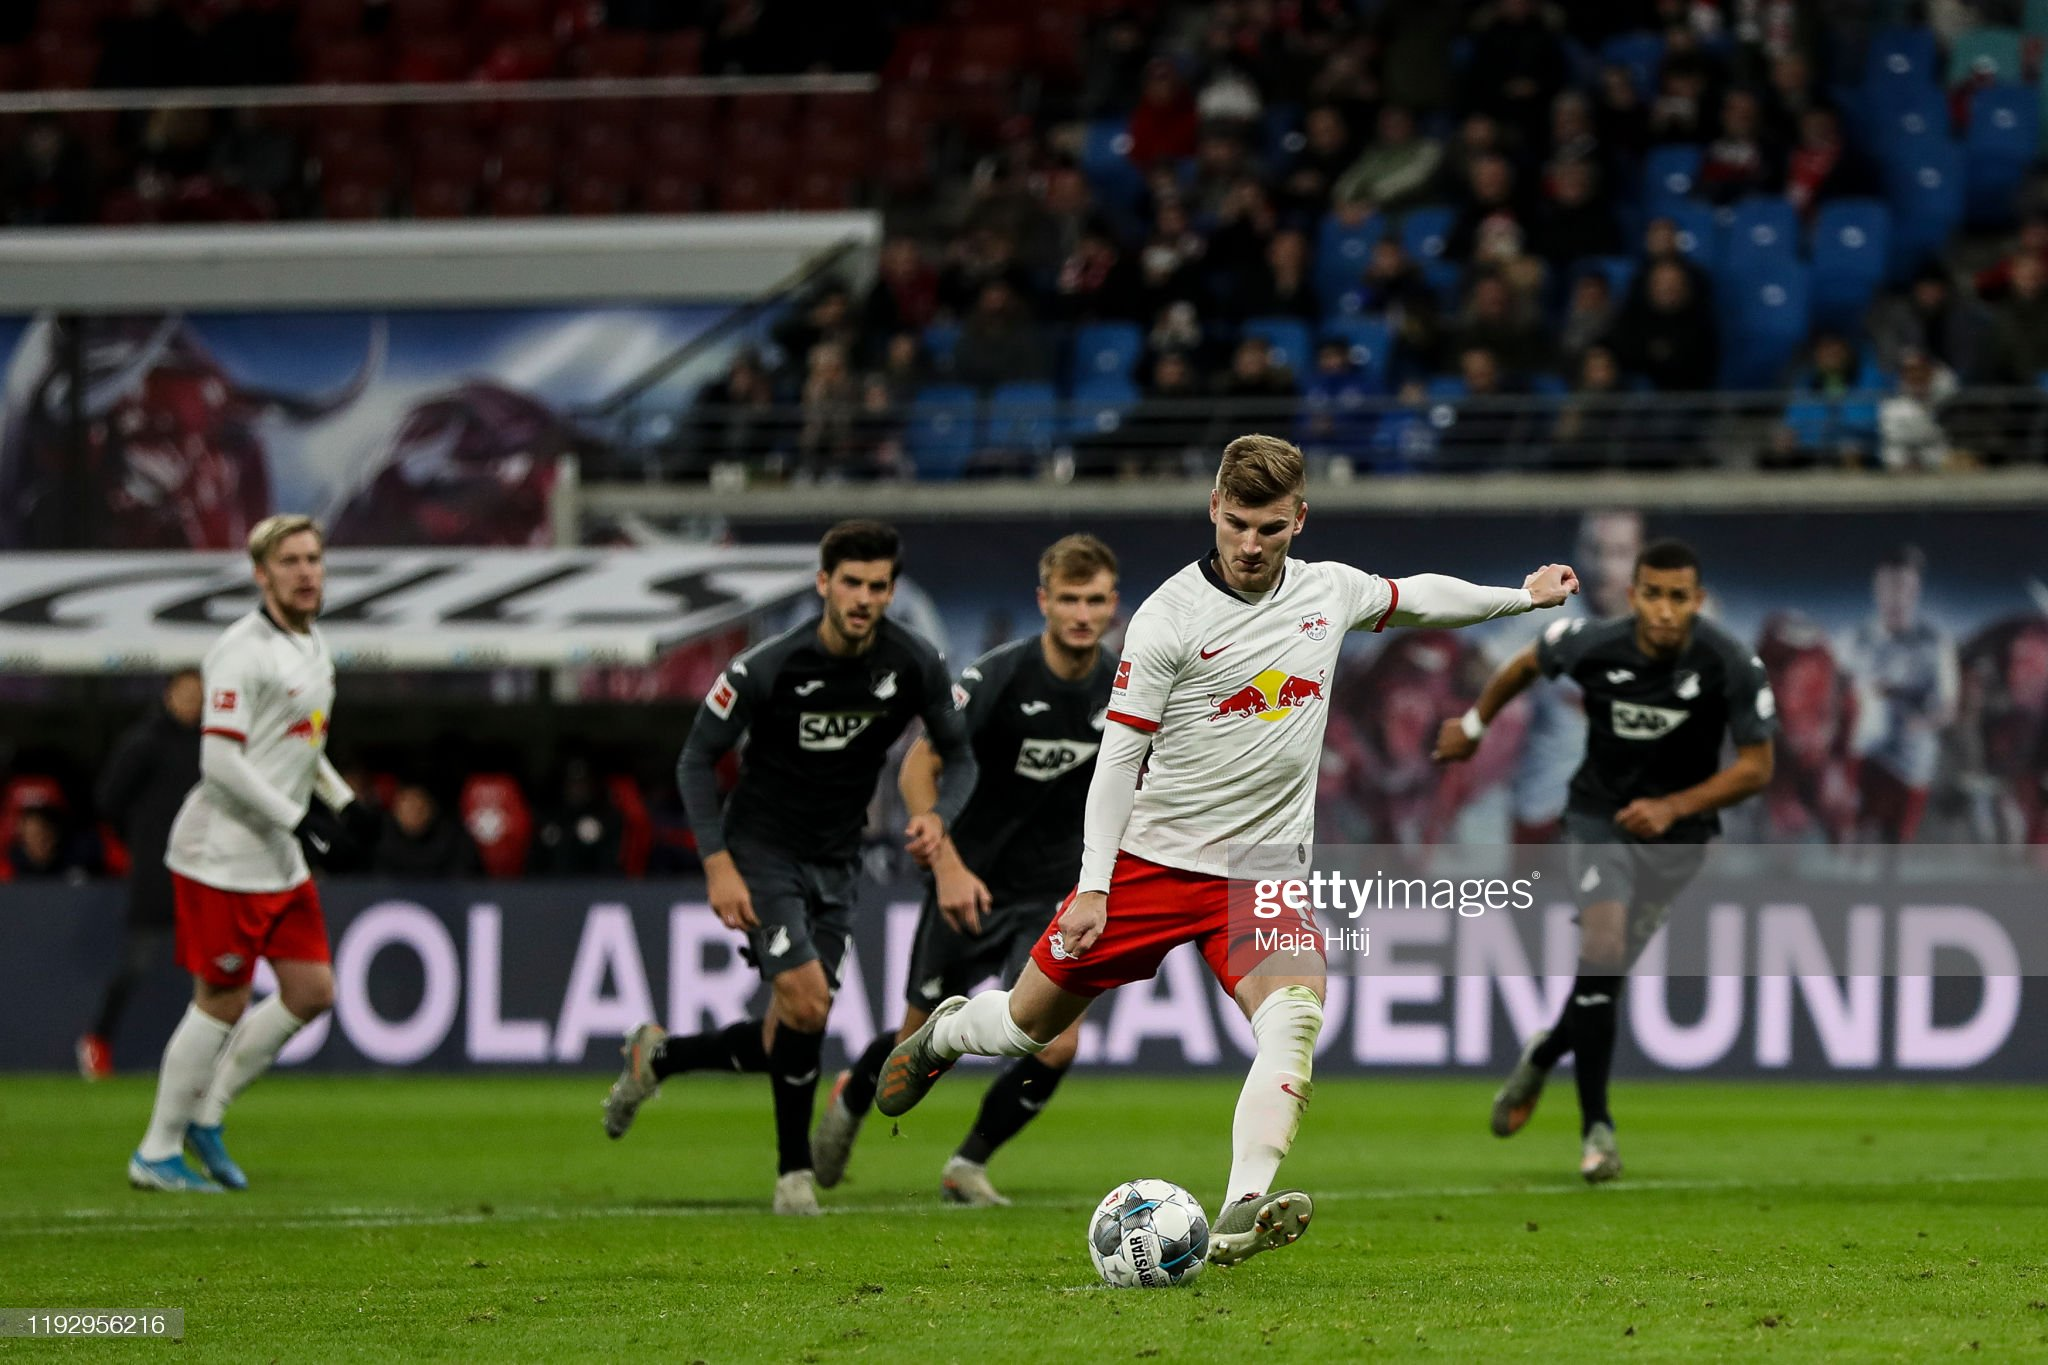 Hoffenheim vs RB Leipzig Preview, prediction and odds